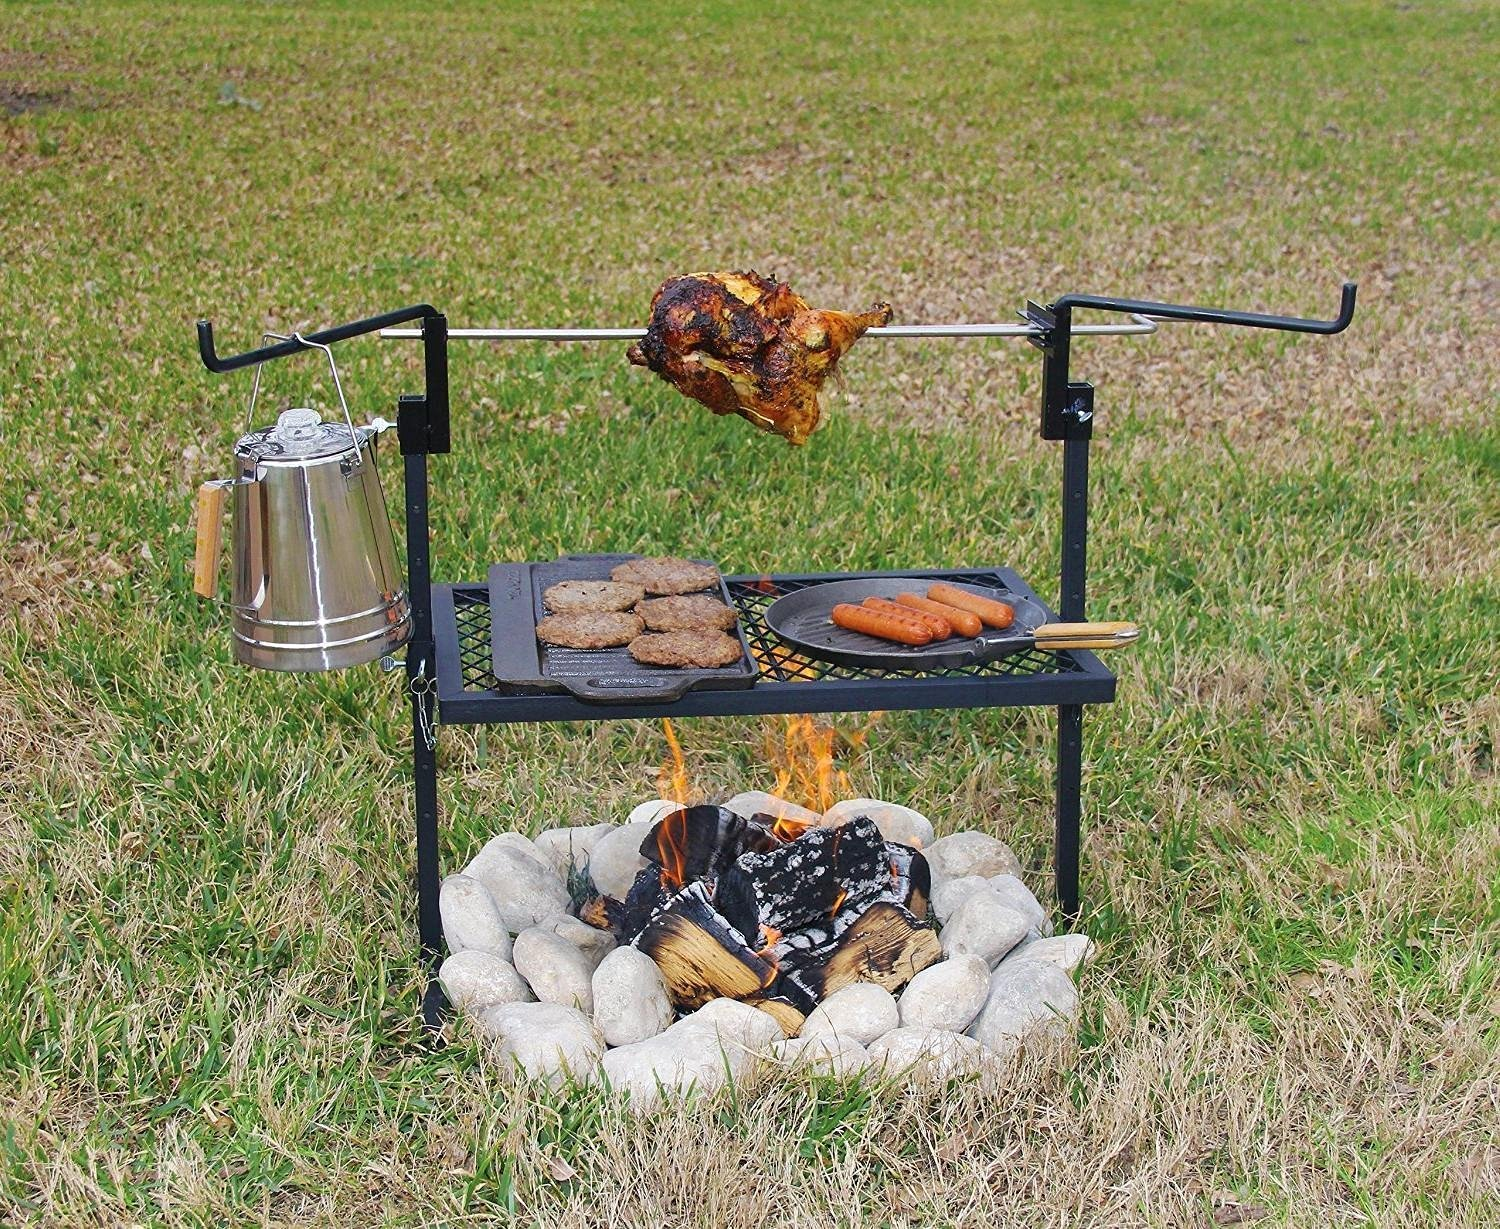 Cheap Vertical Spit Grill, Find Vertical Spit Grill Deals